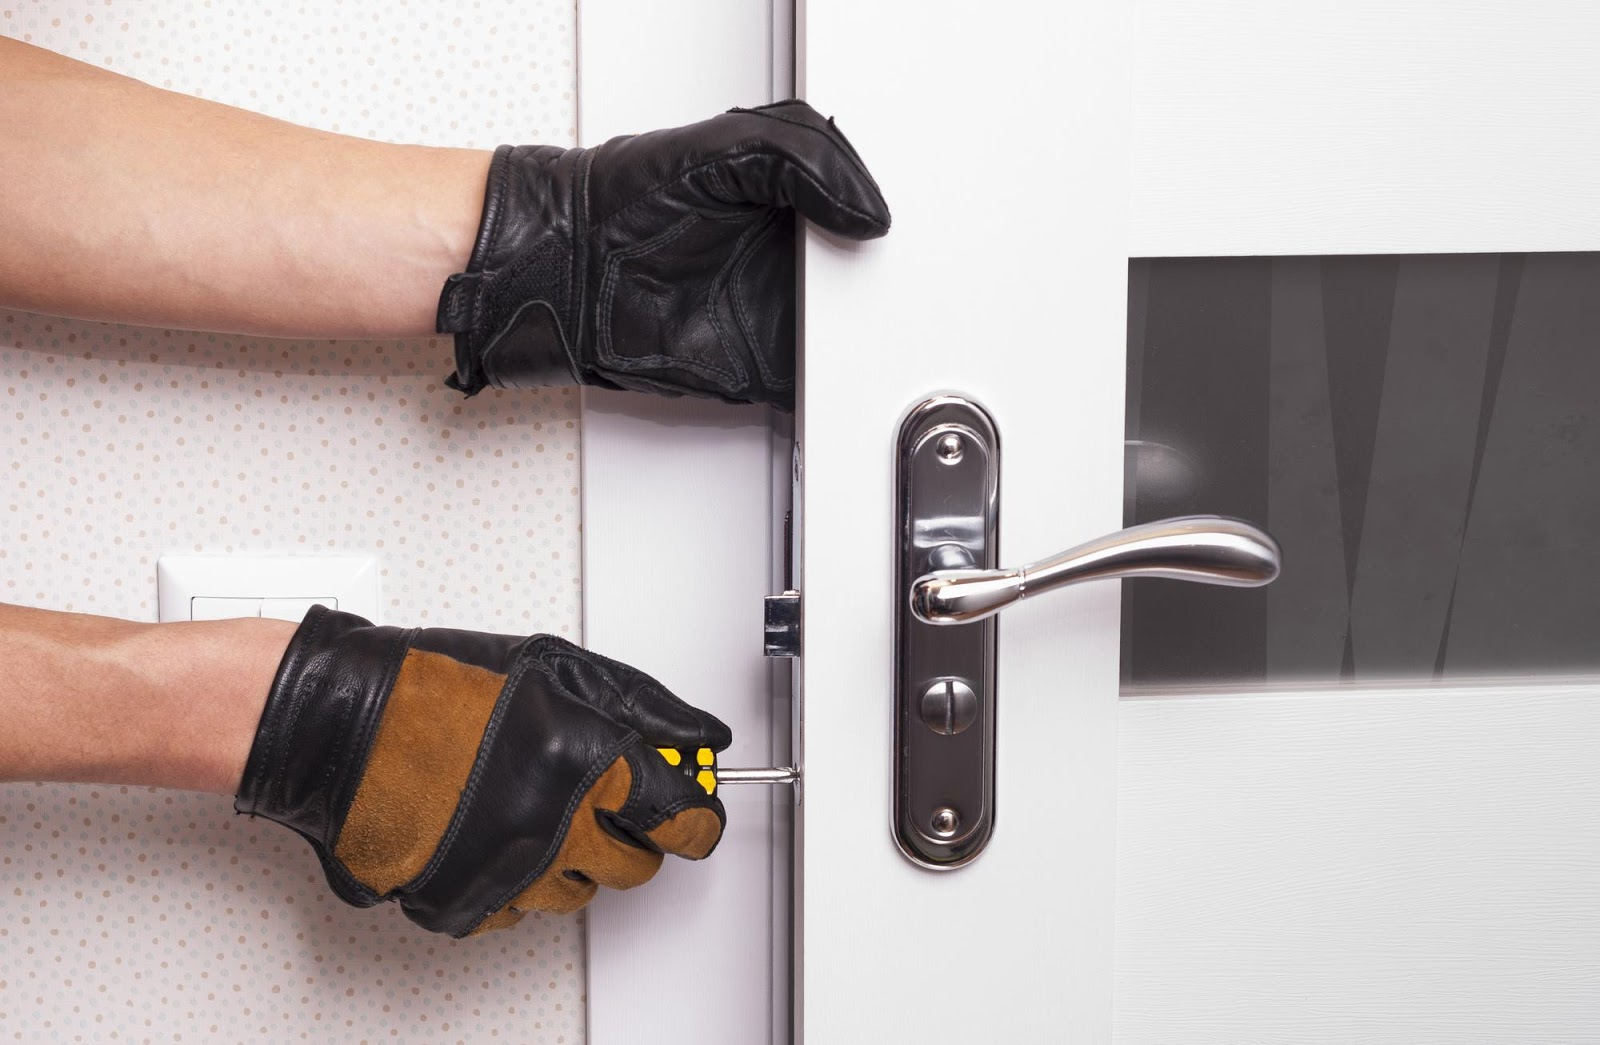 A Locksmith for Break-In Services